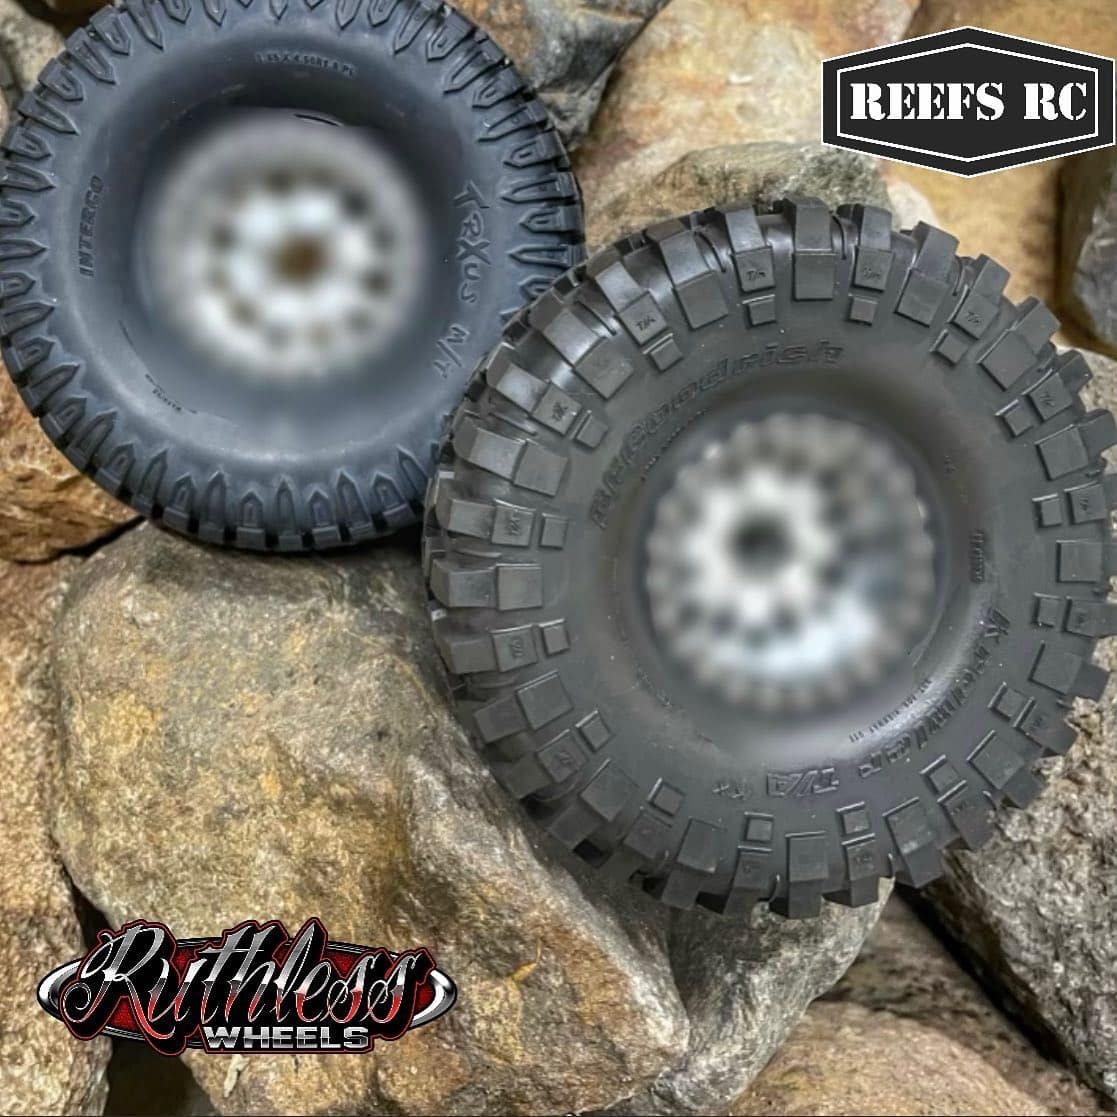 Reef's RC Teases the Release of New Crawler Wheels